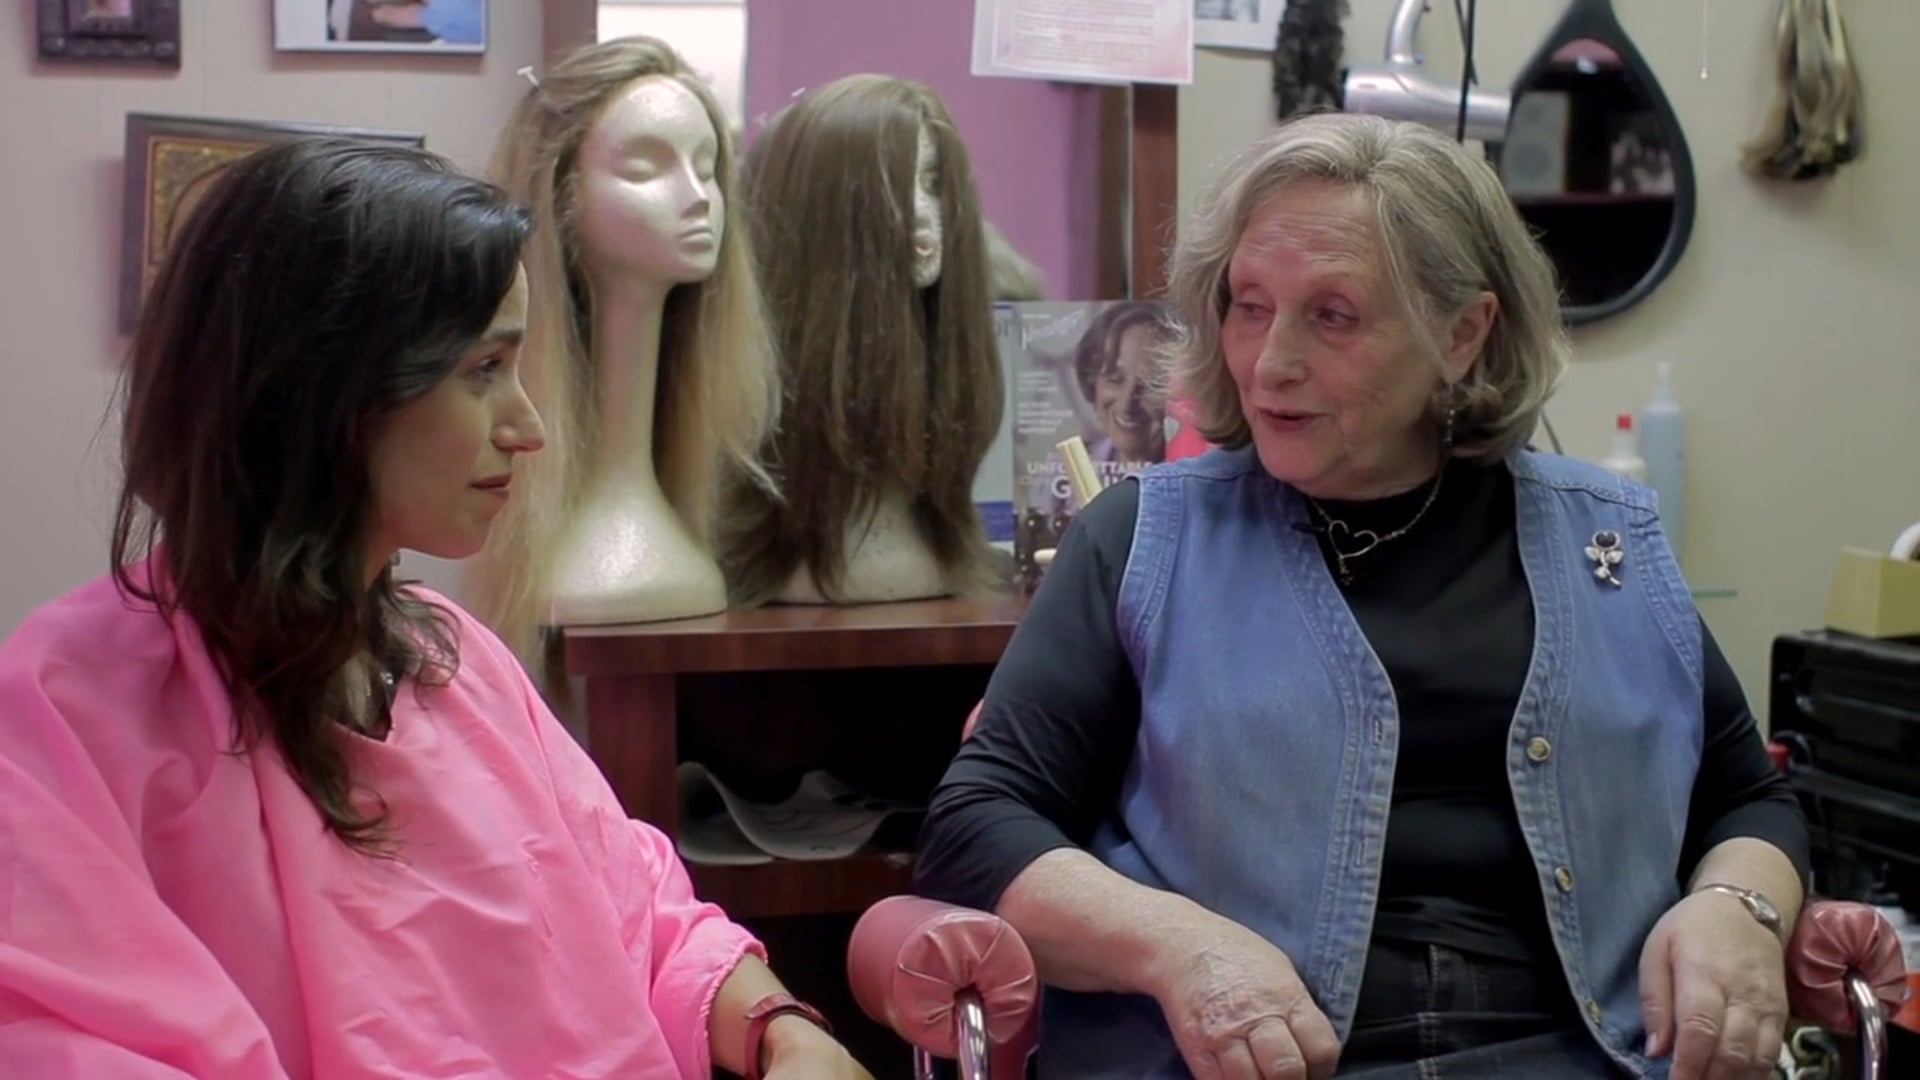 Wig Shopping ('Employee of the Month' short film)